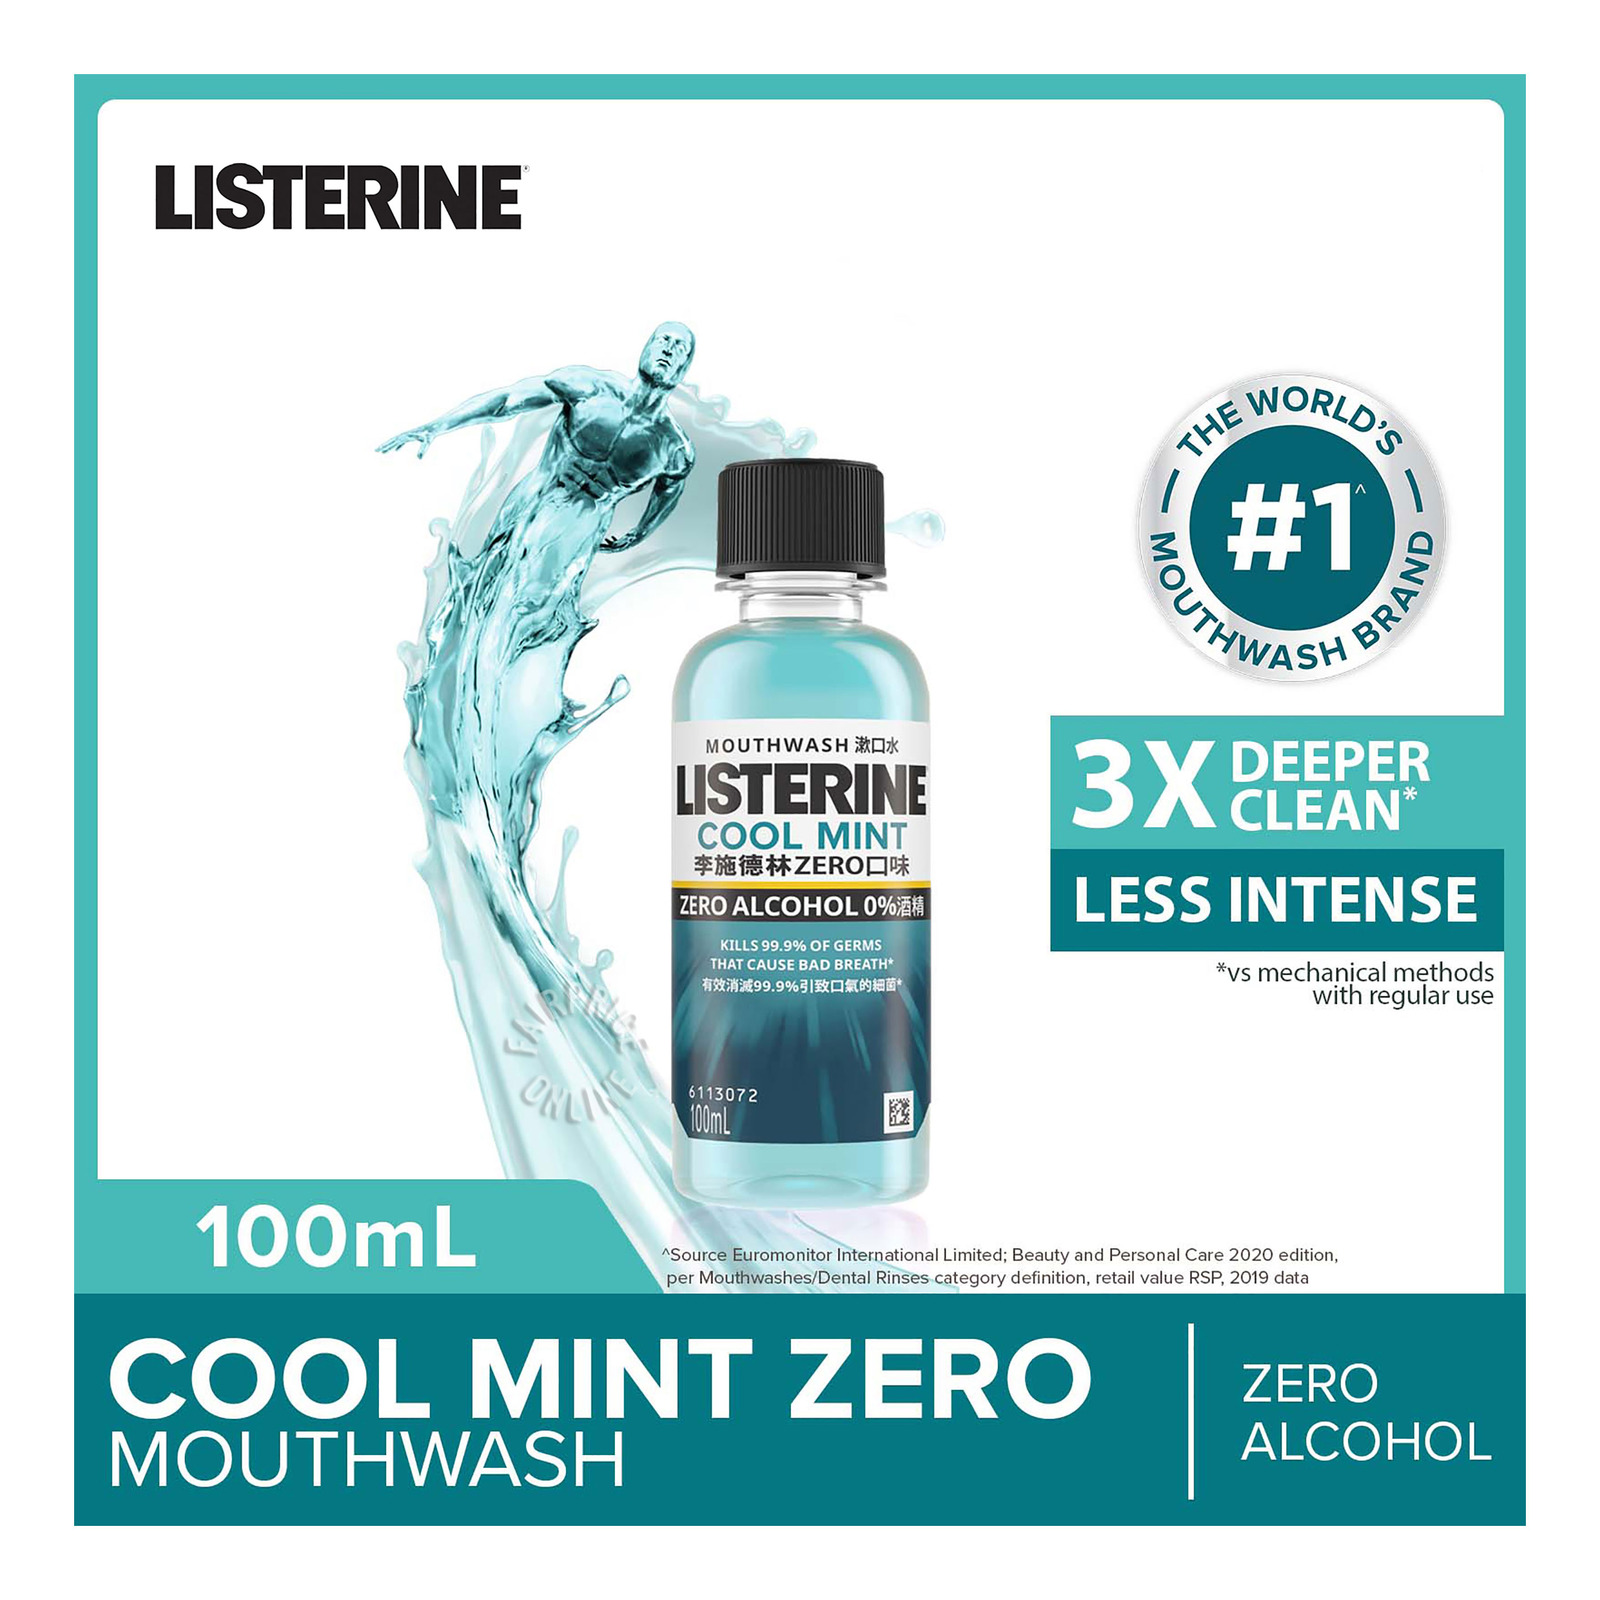 Listerine Travel Pack Mouthwash - Cool Mint Zero